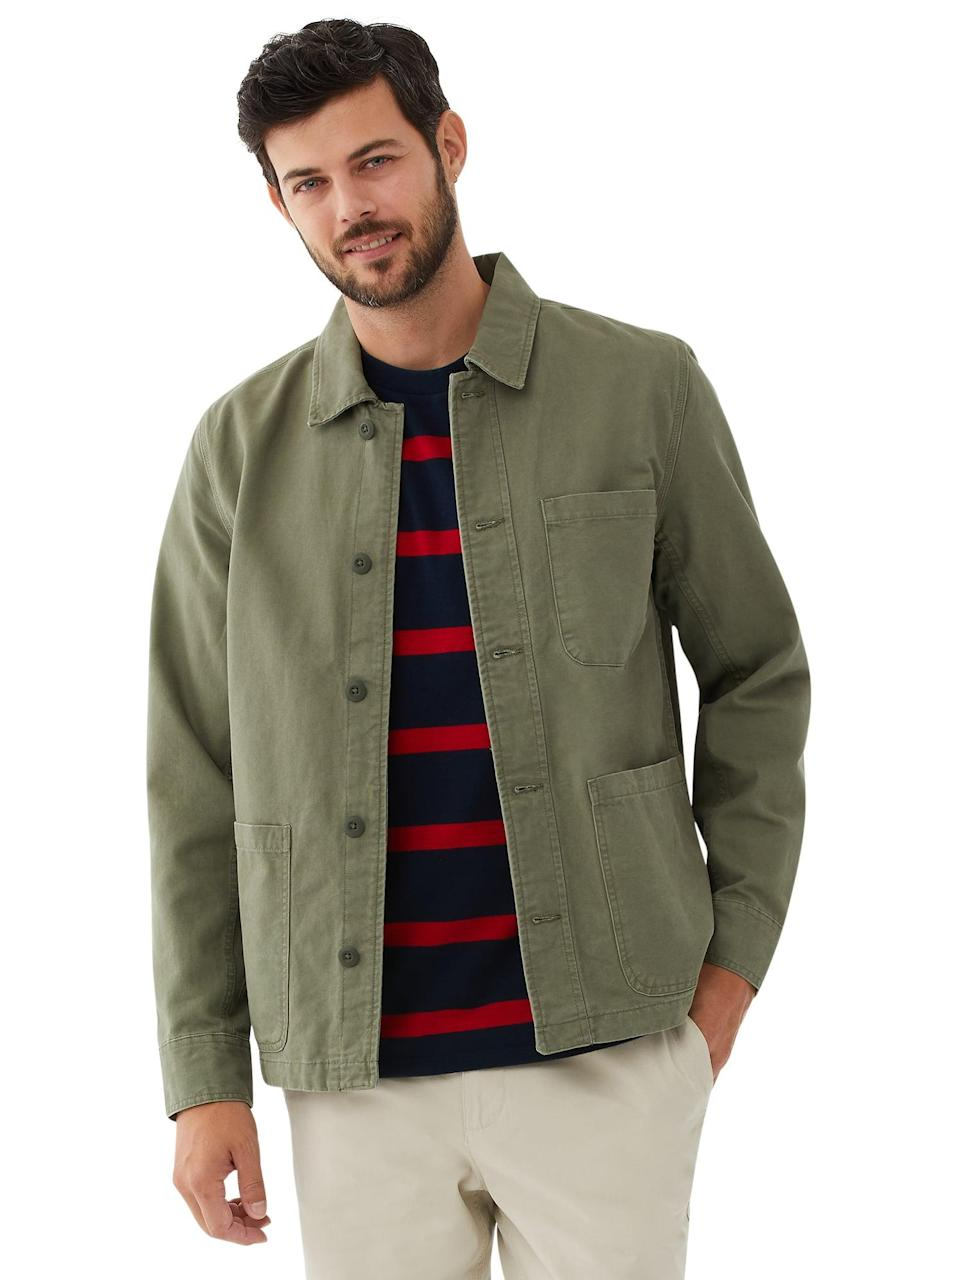 <p>The <span>Free Assembly Men's Chore Jacket </span>($30) is a great layering piece that's bound to become a staple in his wardrobe.</p>